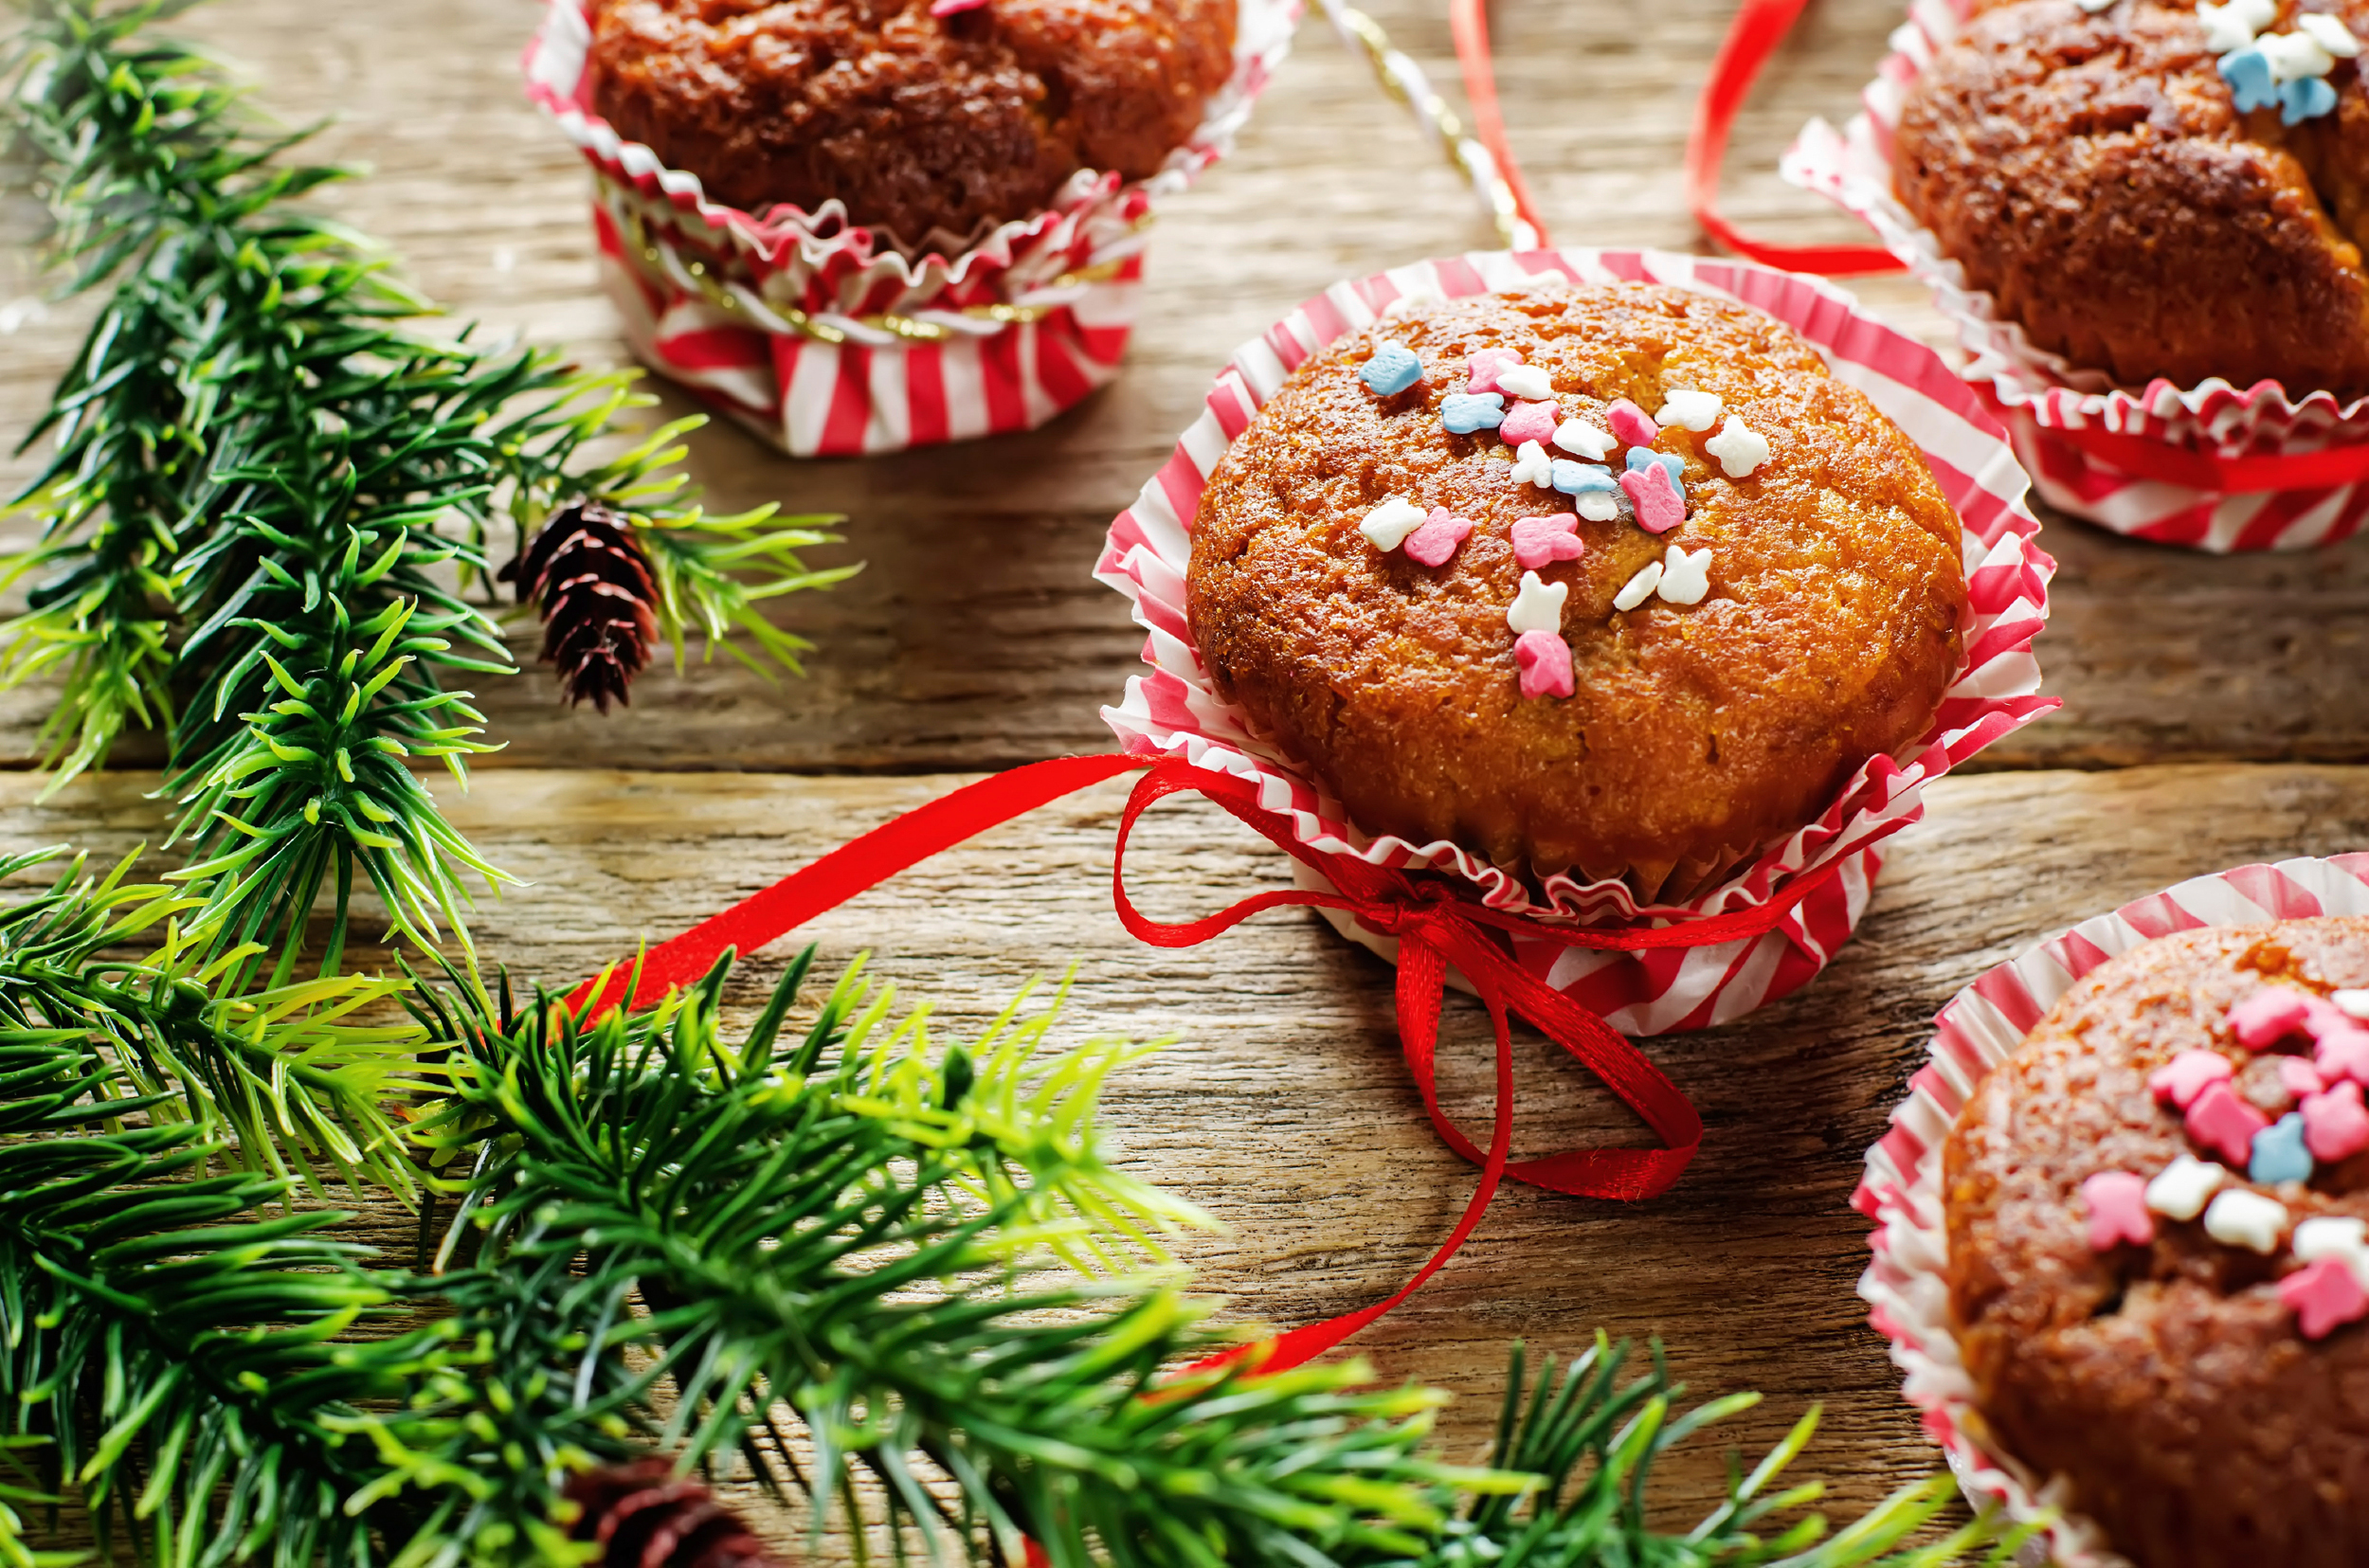 The best holiday desserts for families